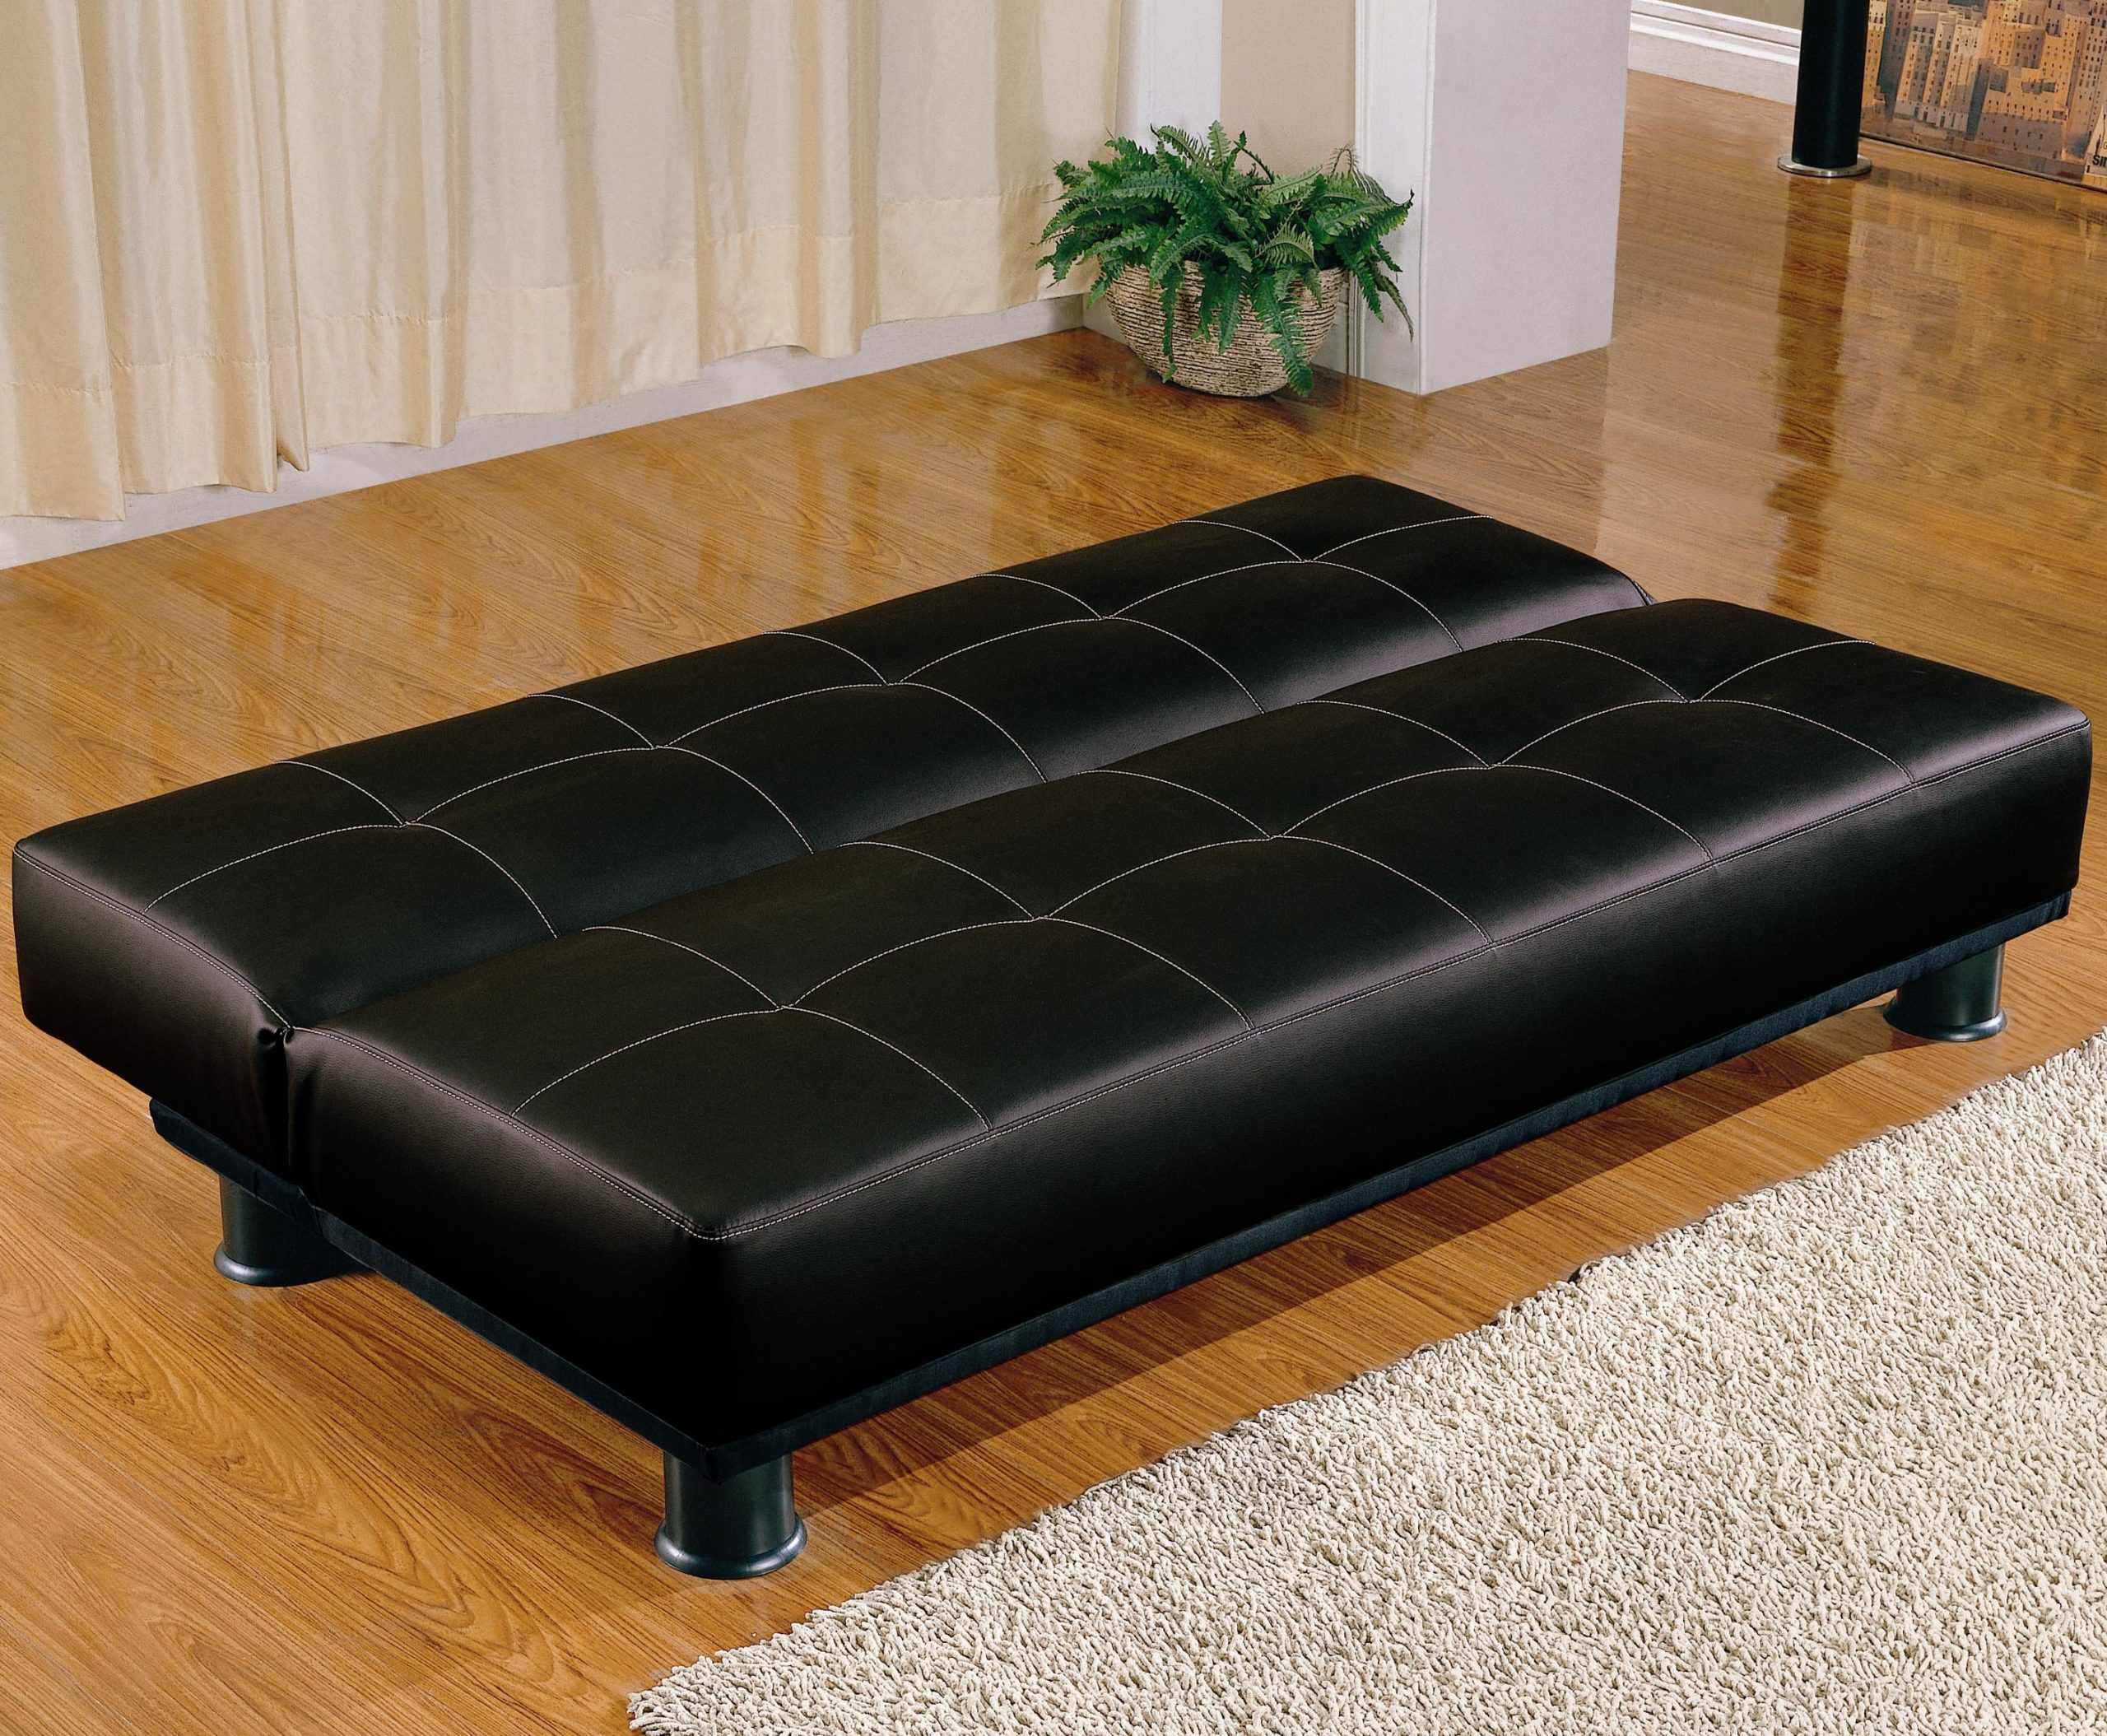 Black Contemporary Armless Convertible Sofa Bed Down Position